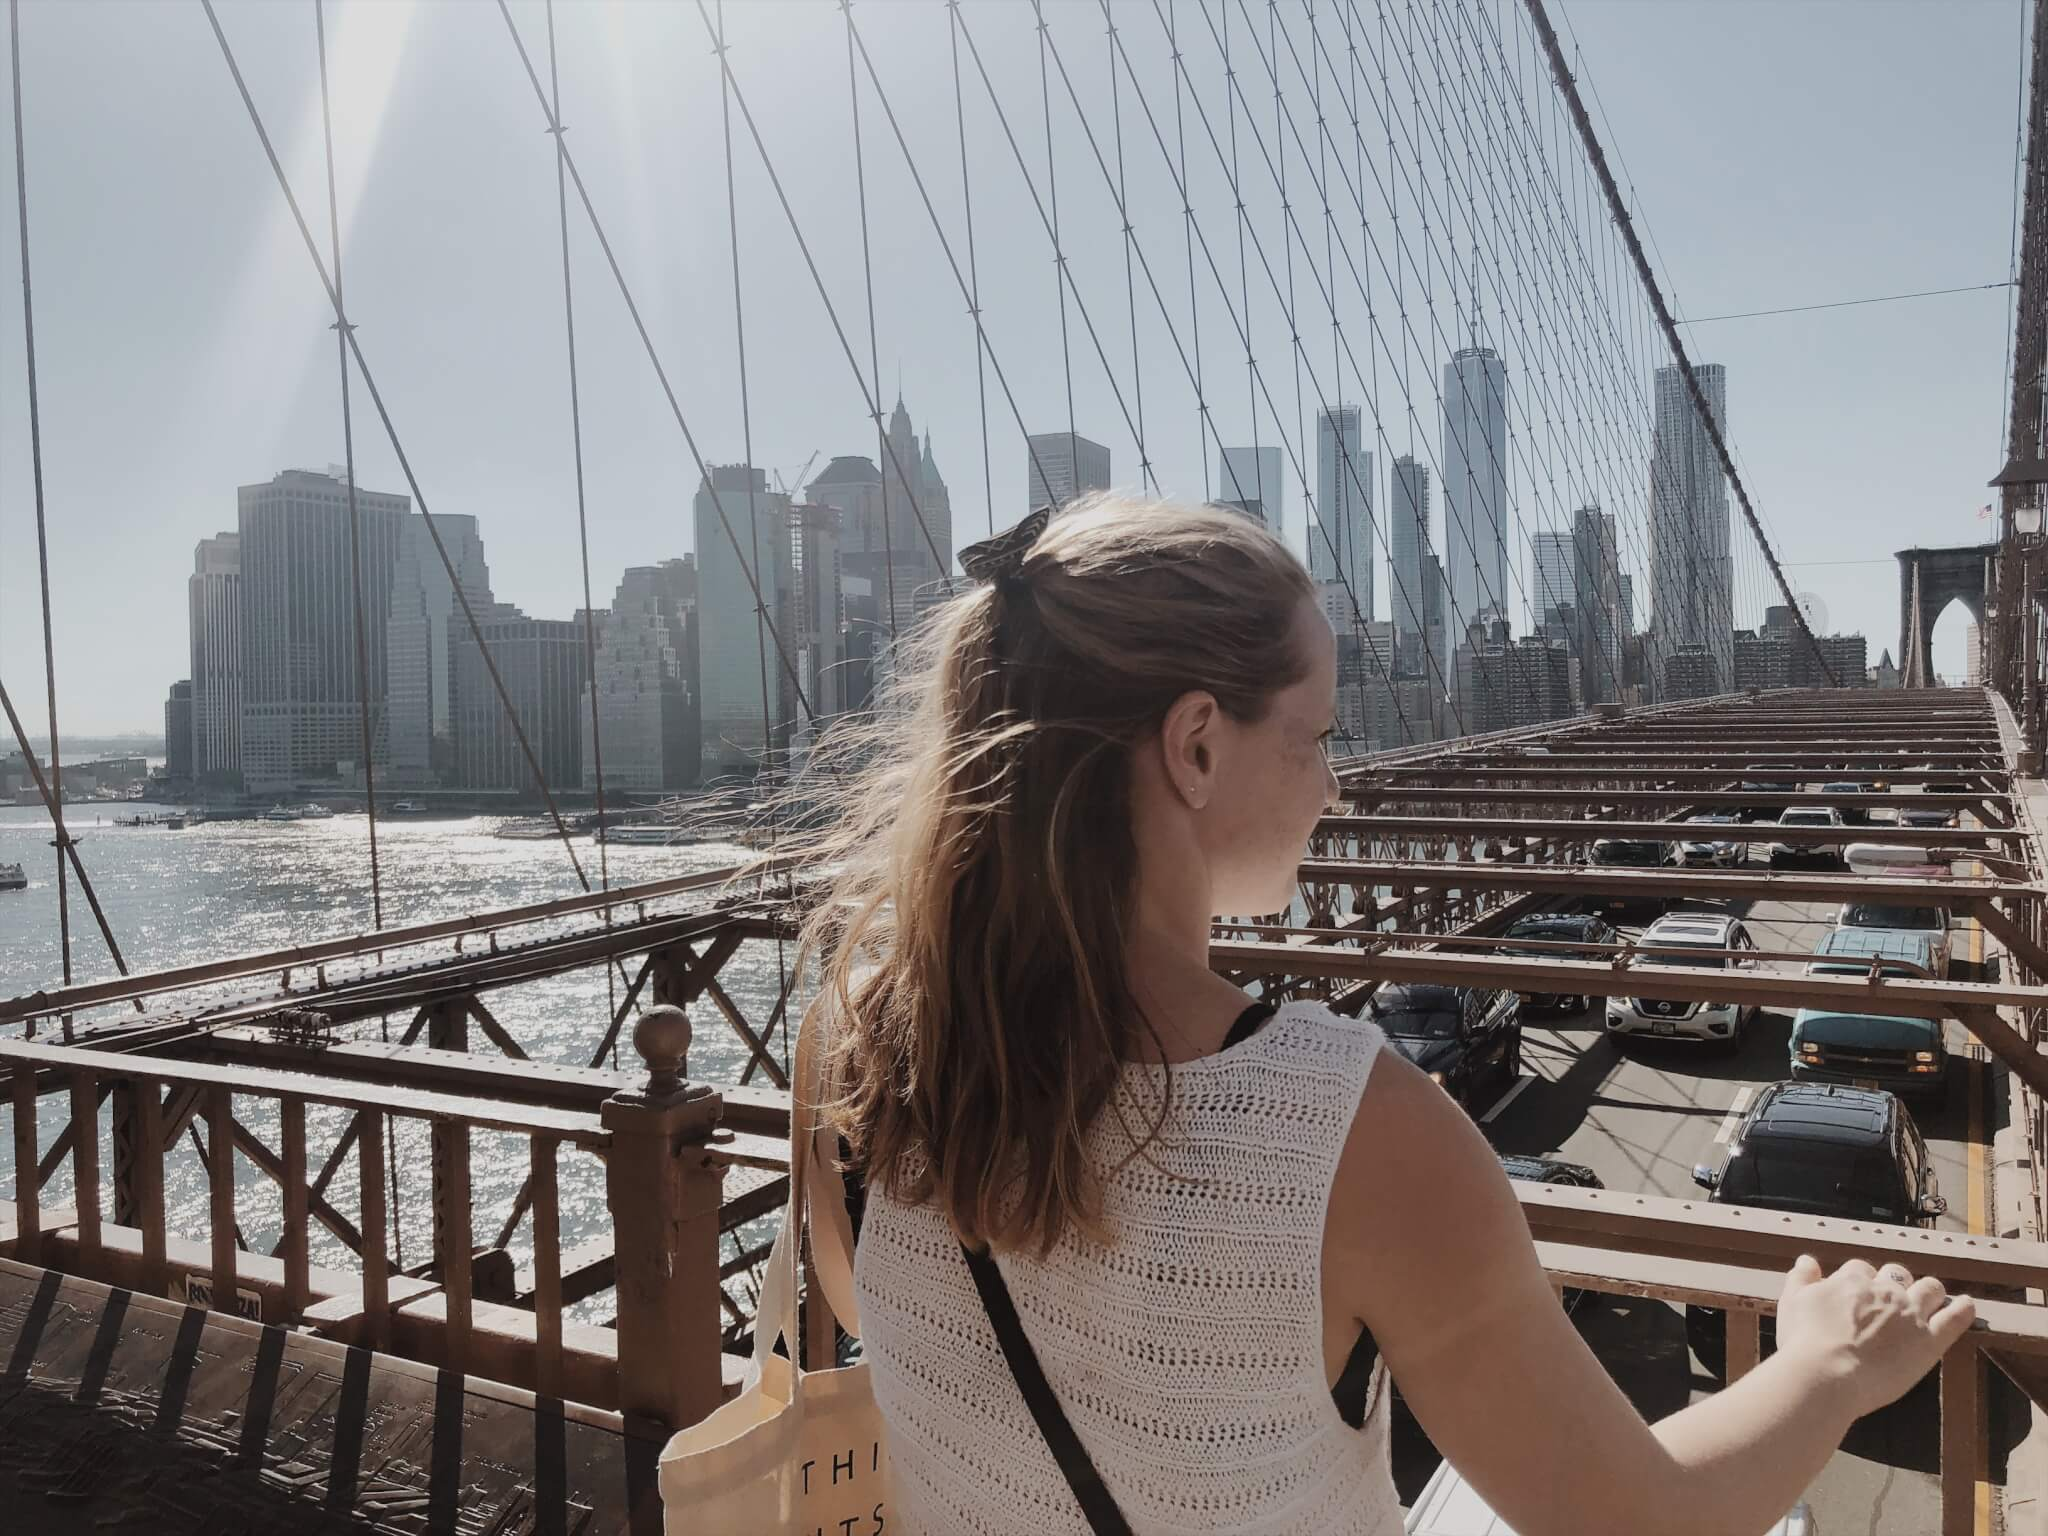 Our NYC Honeymoon: 4 Day NYC Itinerary